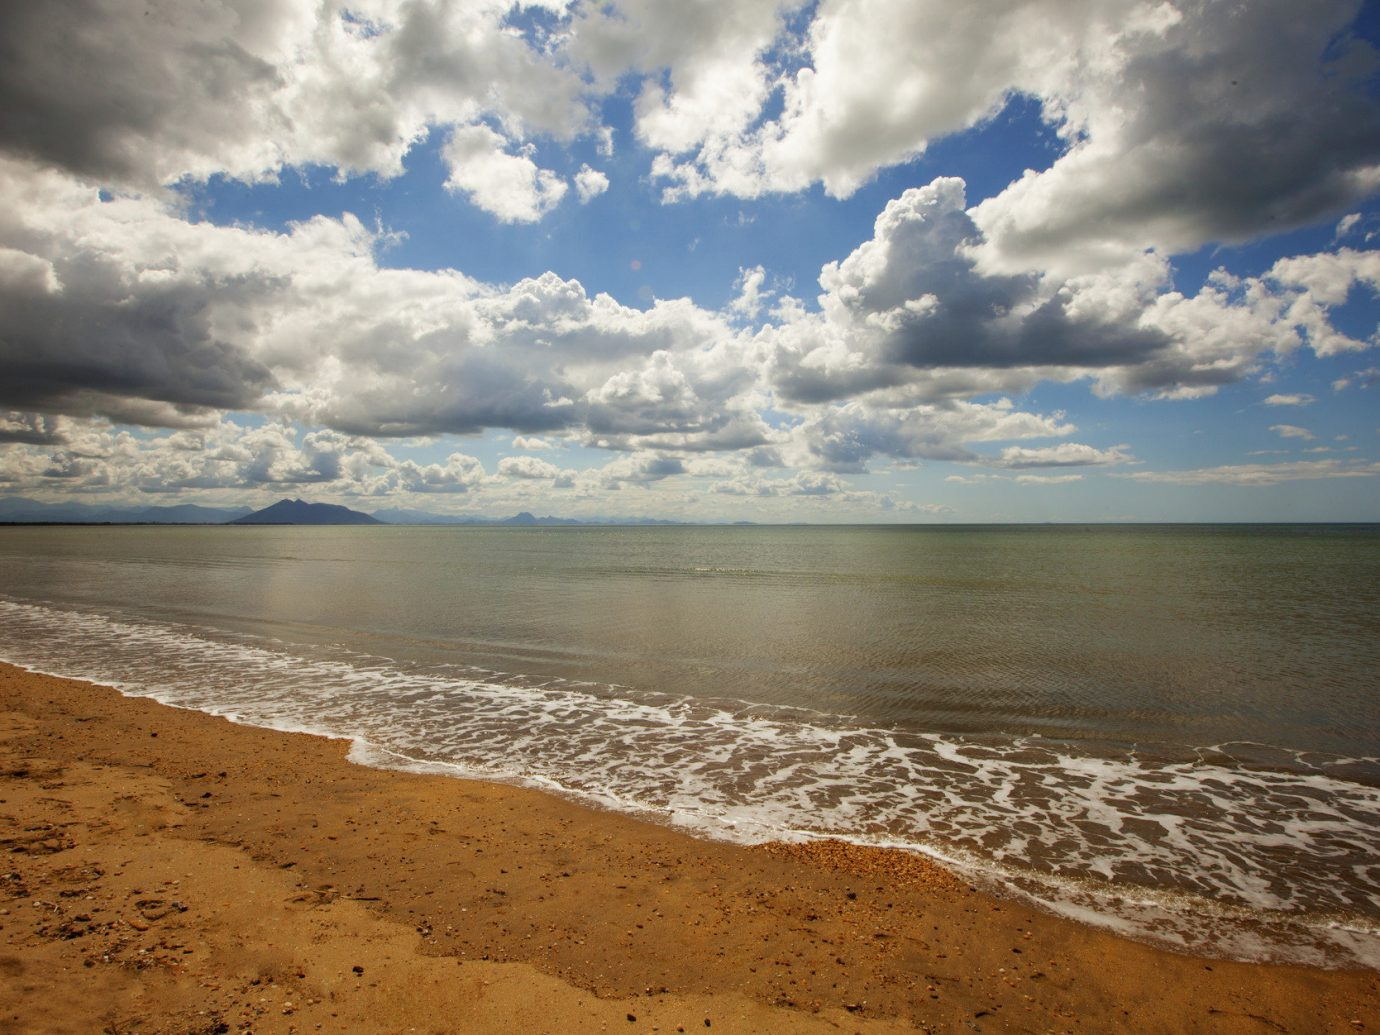 Trip Ideas sky outdoor Beach cloud Sea shore body of water Ocean horizon Coast Nature wave clouds water cloudy wind wave sand sunlight rock meteorological phenomenon bay reflection dusk material sandy day